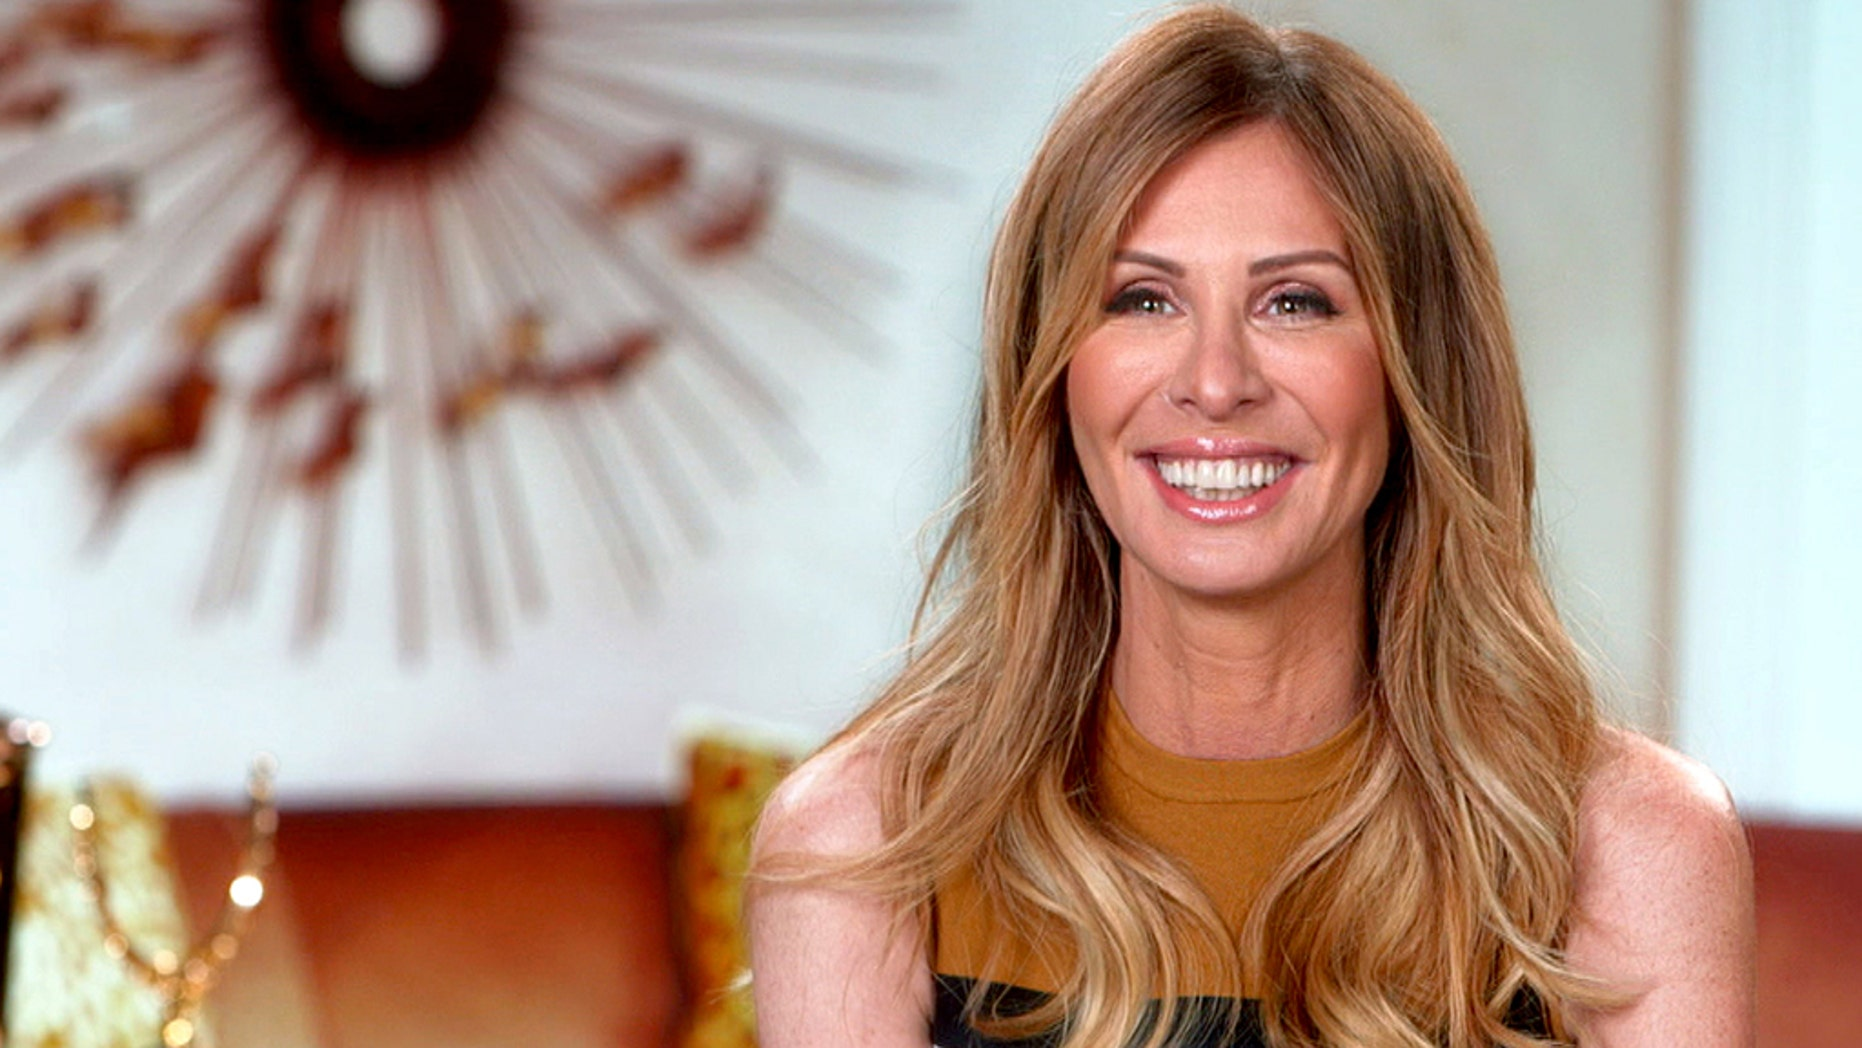 Carole Radziwill, who joined the Real Housewives of New York in 2012, left the Bravo reality series after six seasons to concentrate on reporting,.